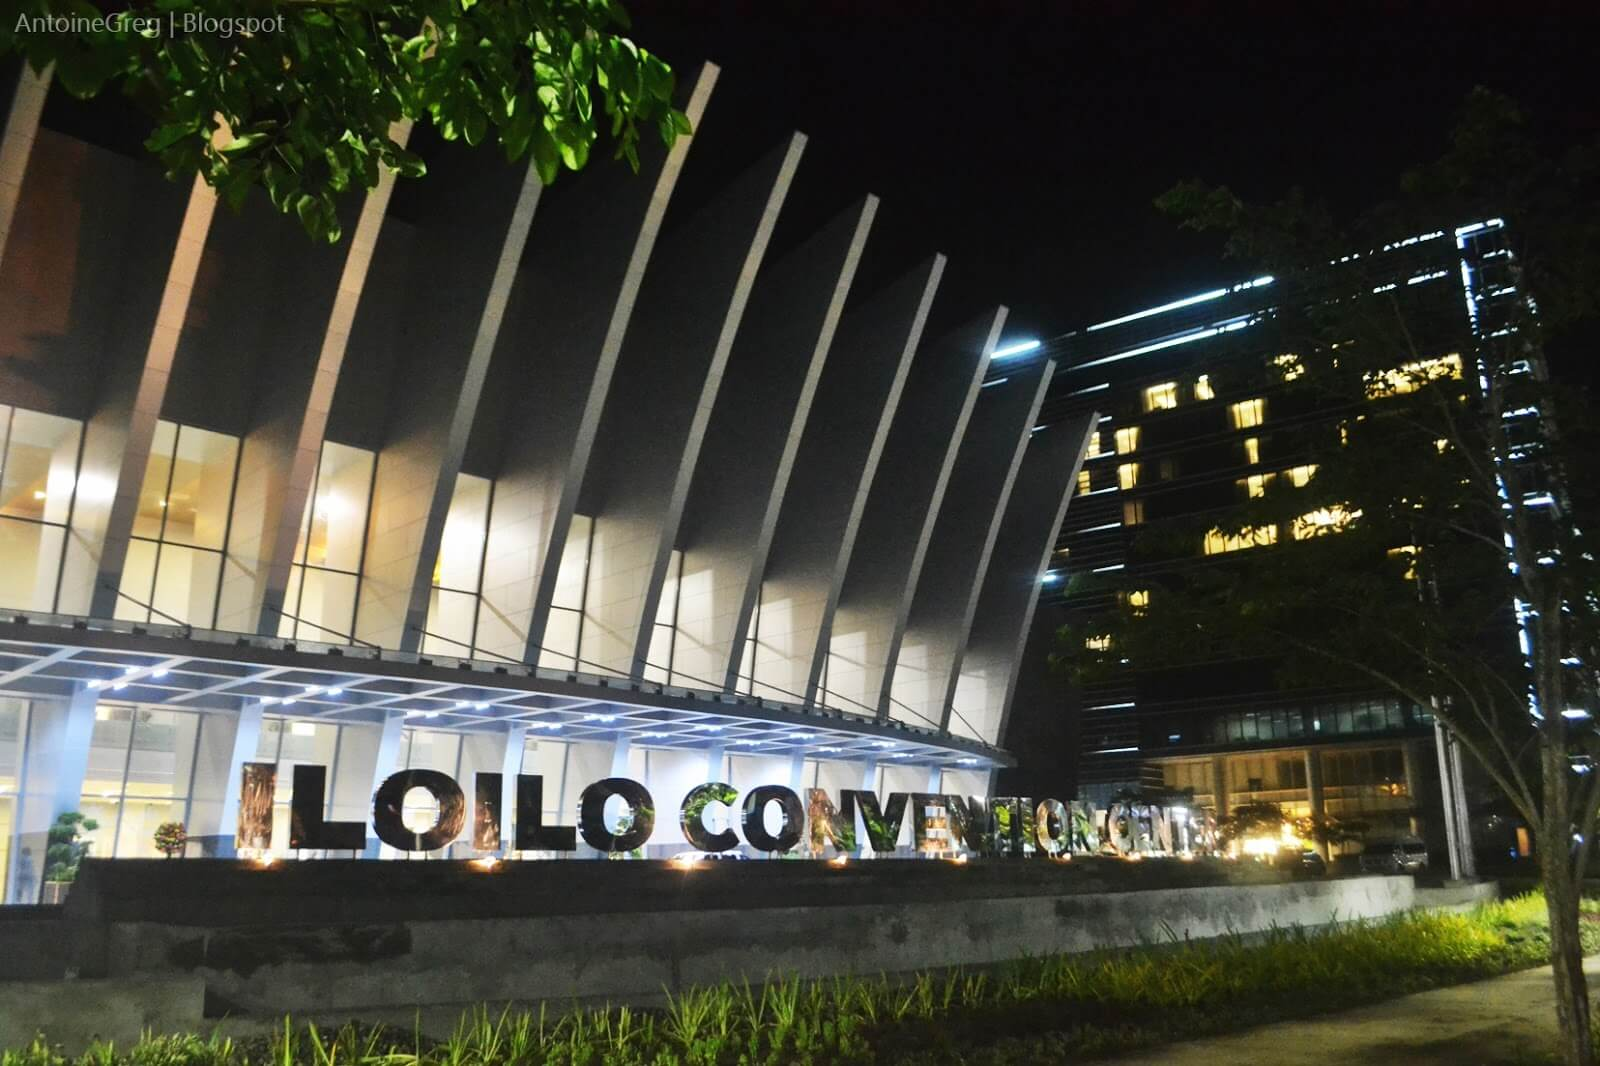 Iloilo Convention Center